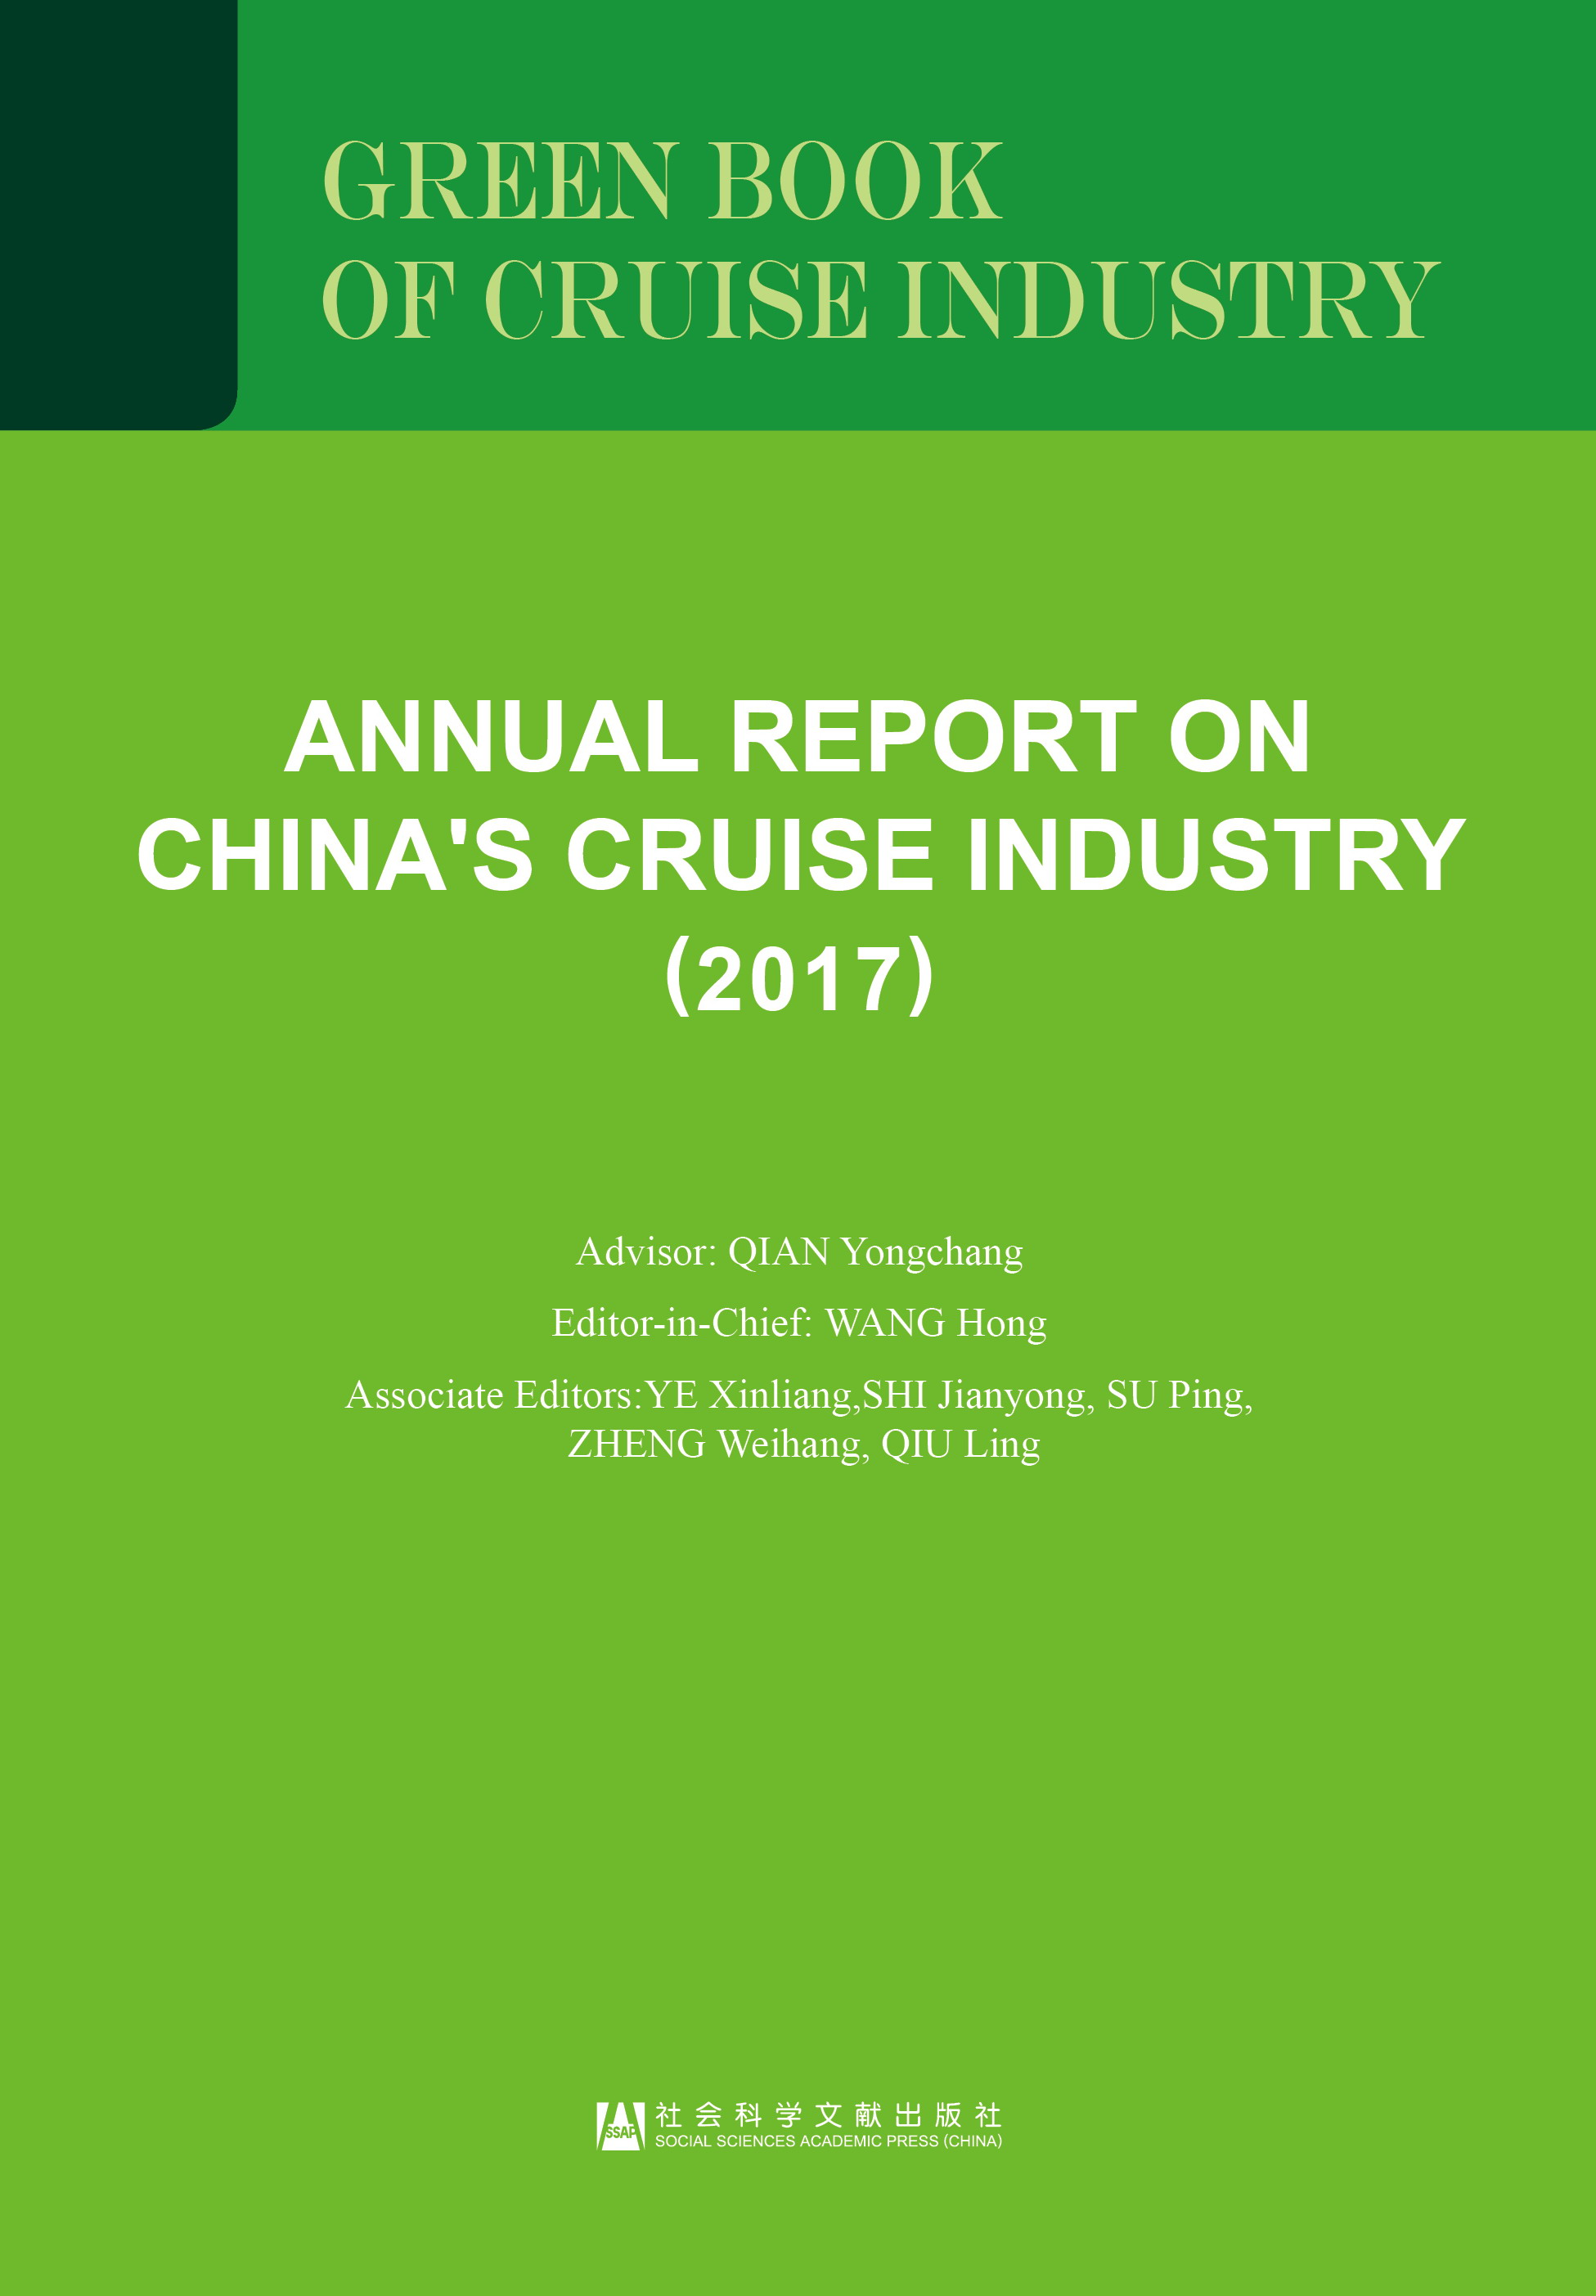 ANNUAL REPORT ON CHINA'S CRUISE INDUSTRY (2017)